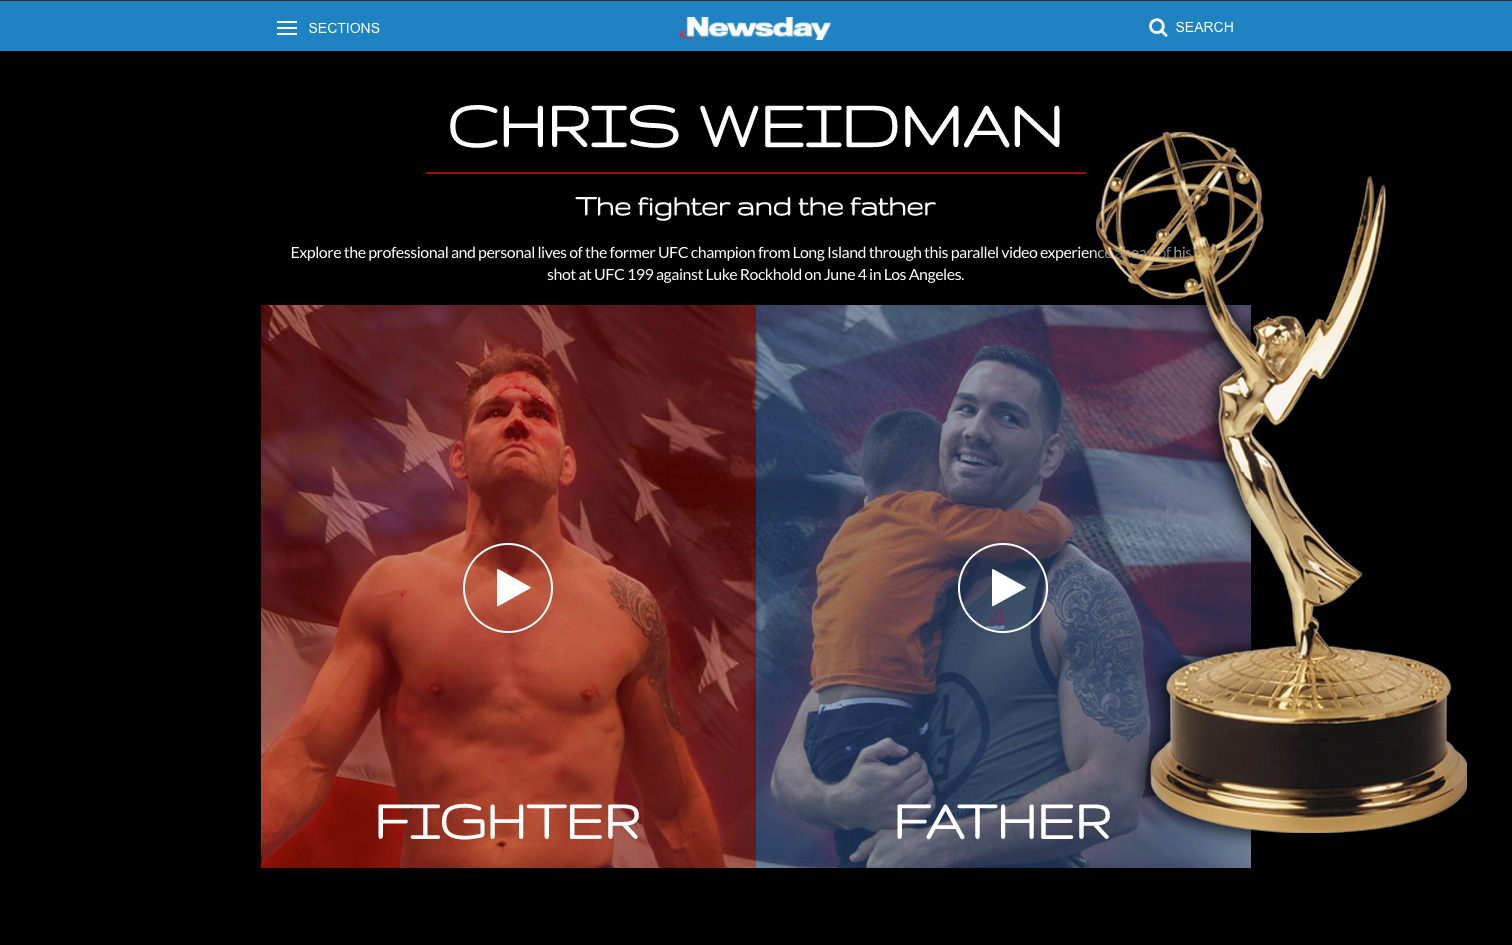 chris weidman project - emmy winner